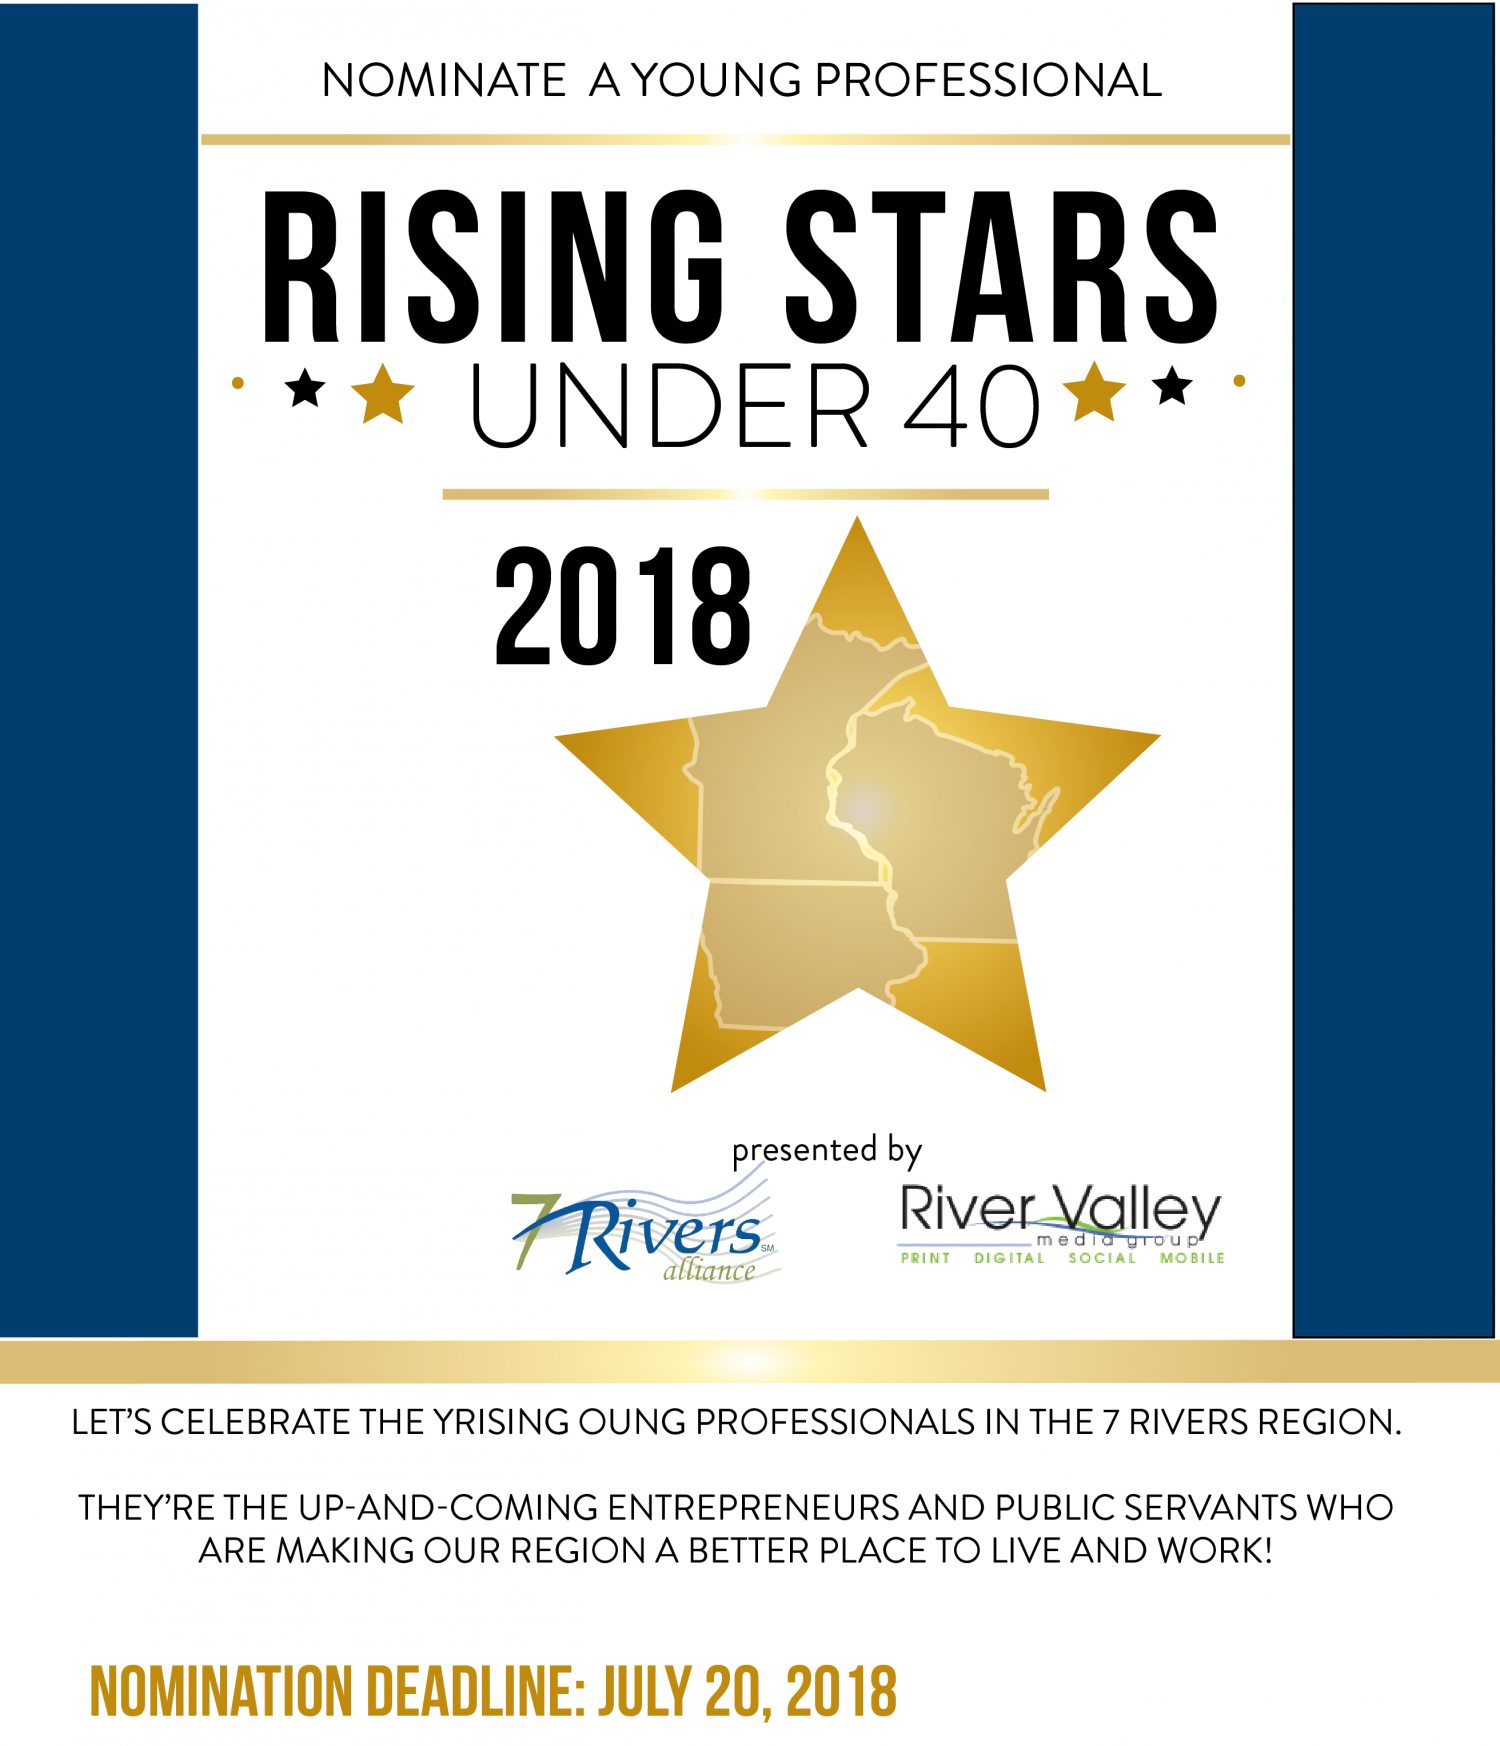 Rising Stars Promotional Materials 01 7 Rivers Alliance